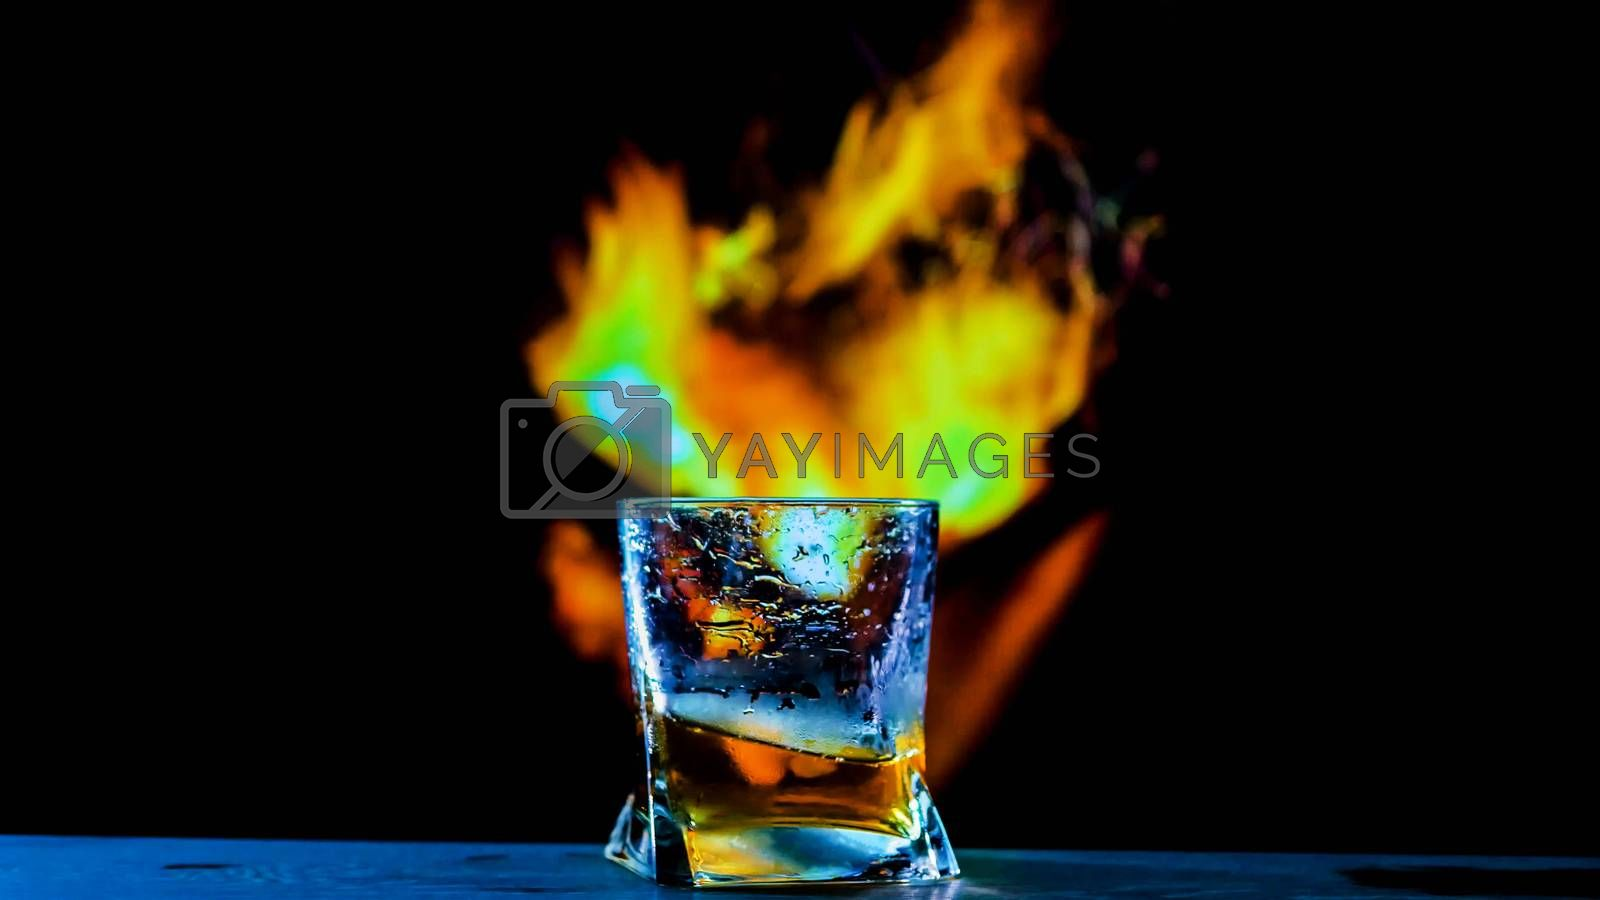 Royalty free image of A glass of whiskey on a fiery background,an alcoholic drink on a bar counter,a cognac in a glass by Andriii_Klapkoo